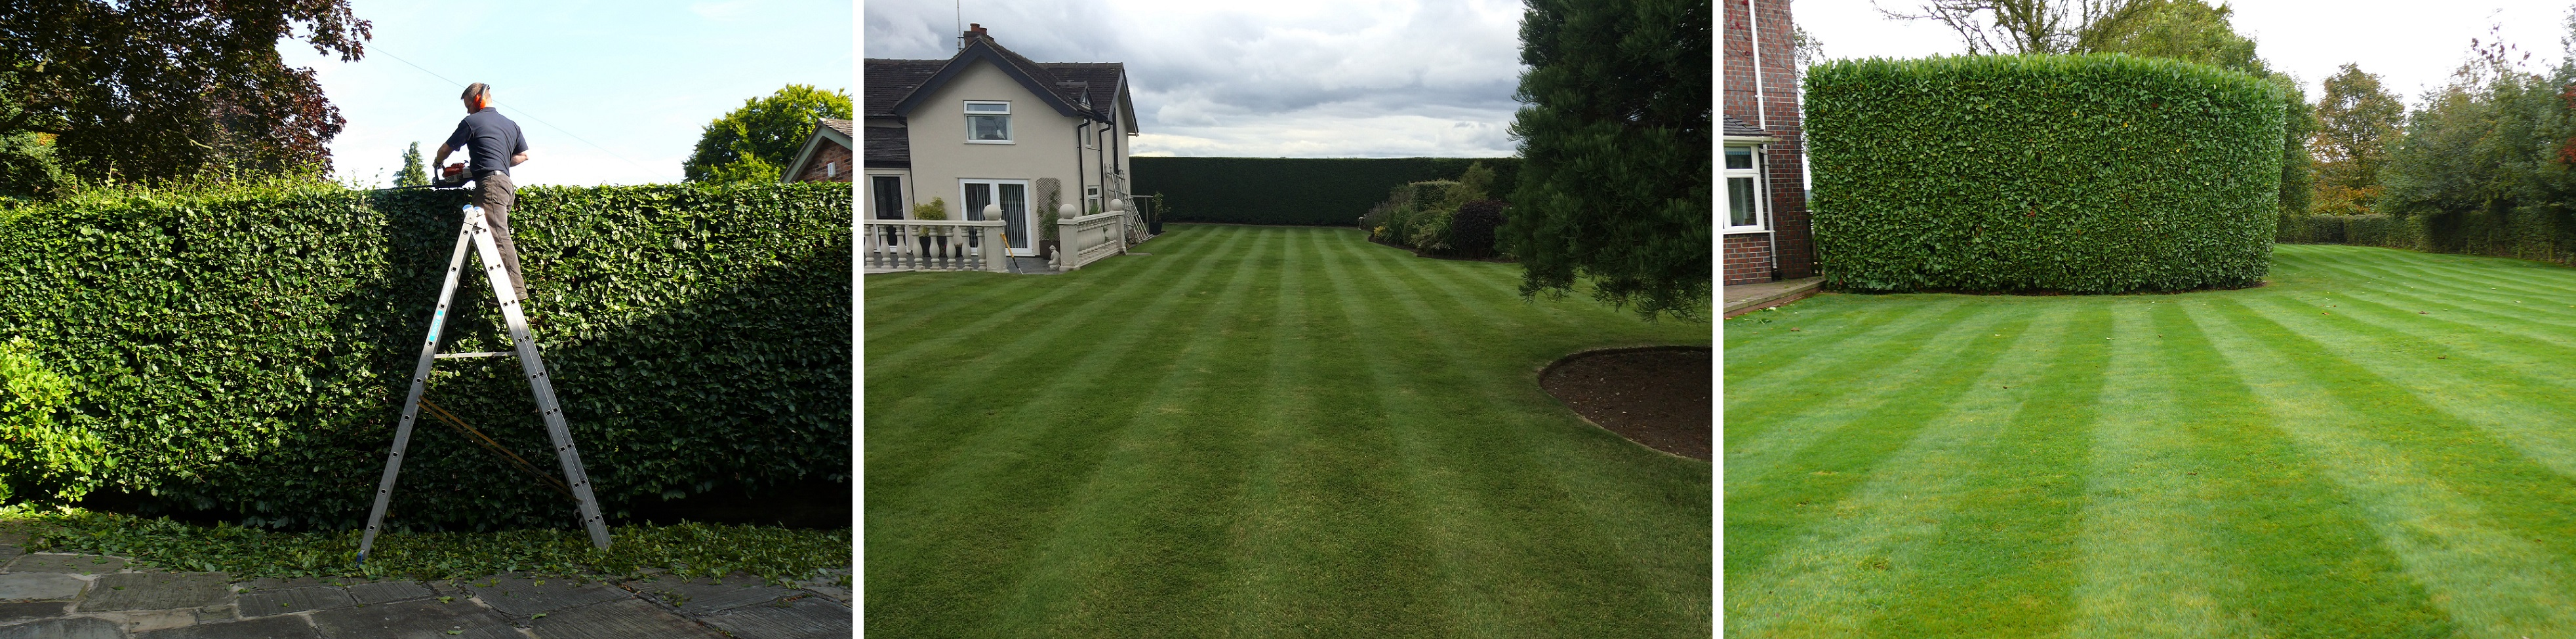 Hedge Cutting in Knutsford, Cheshire